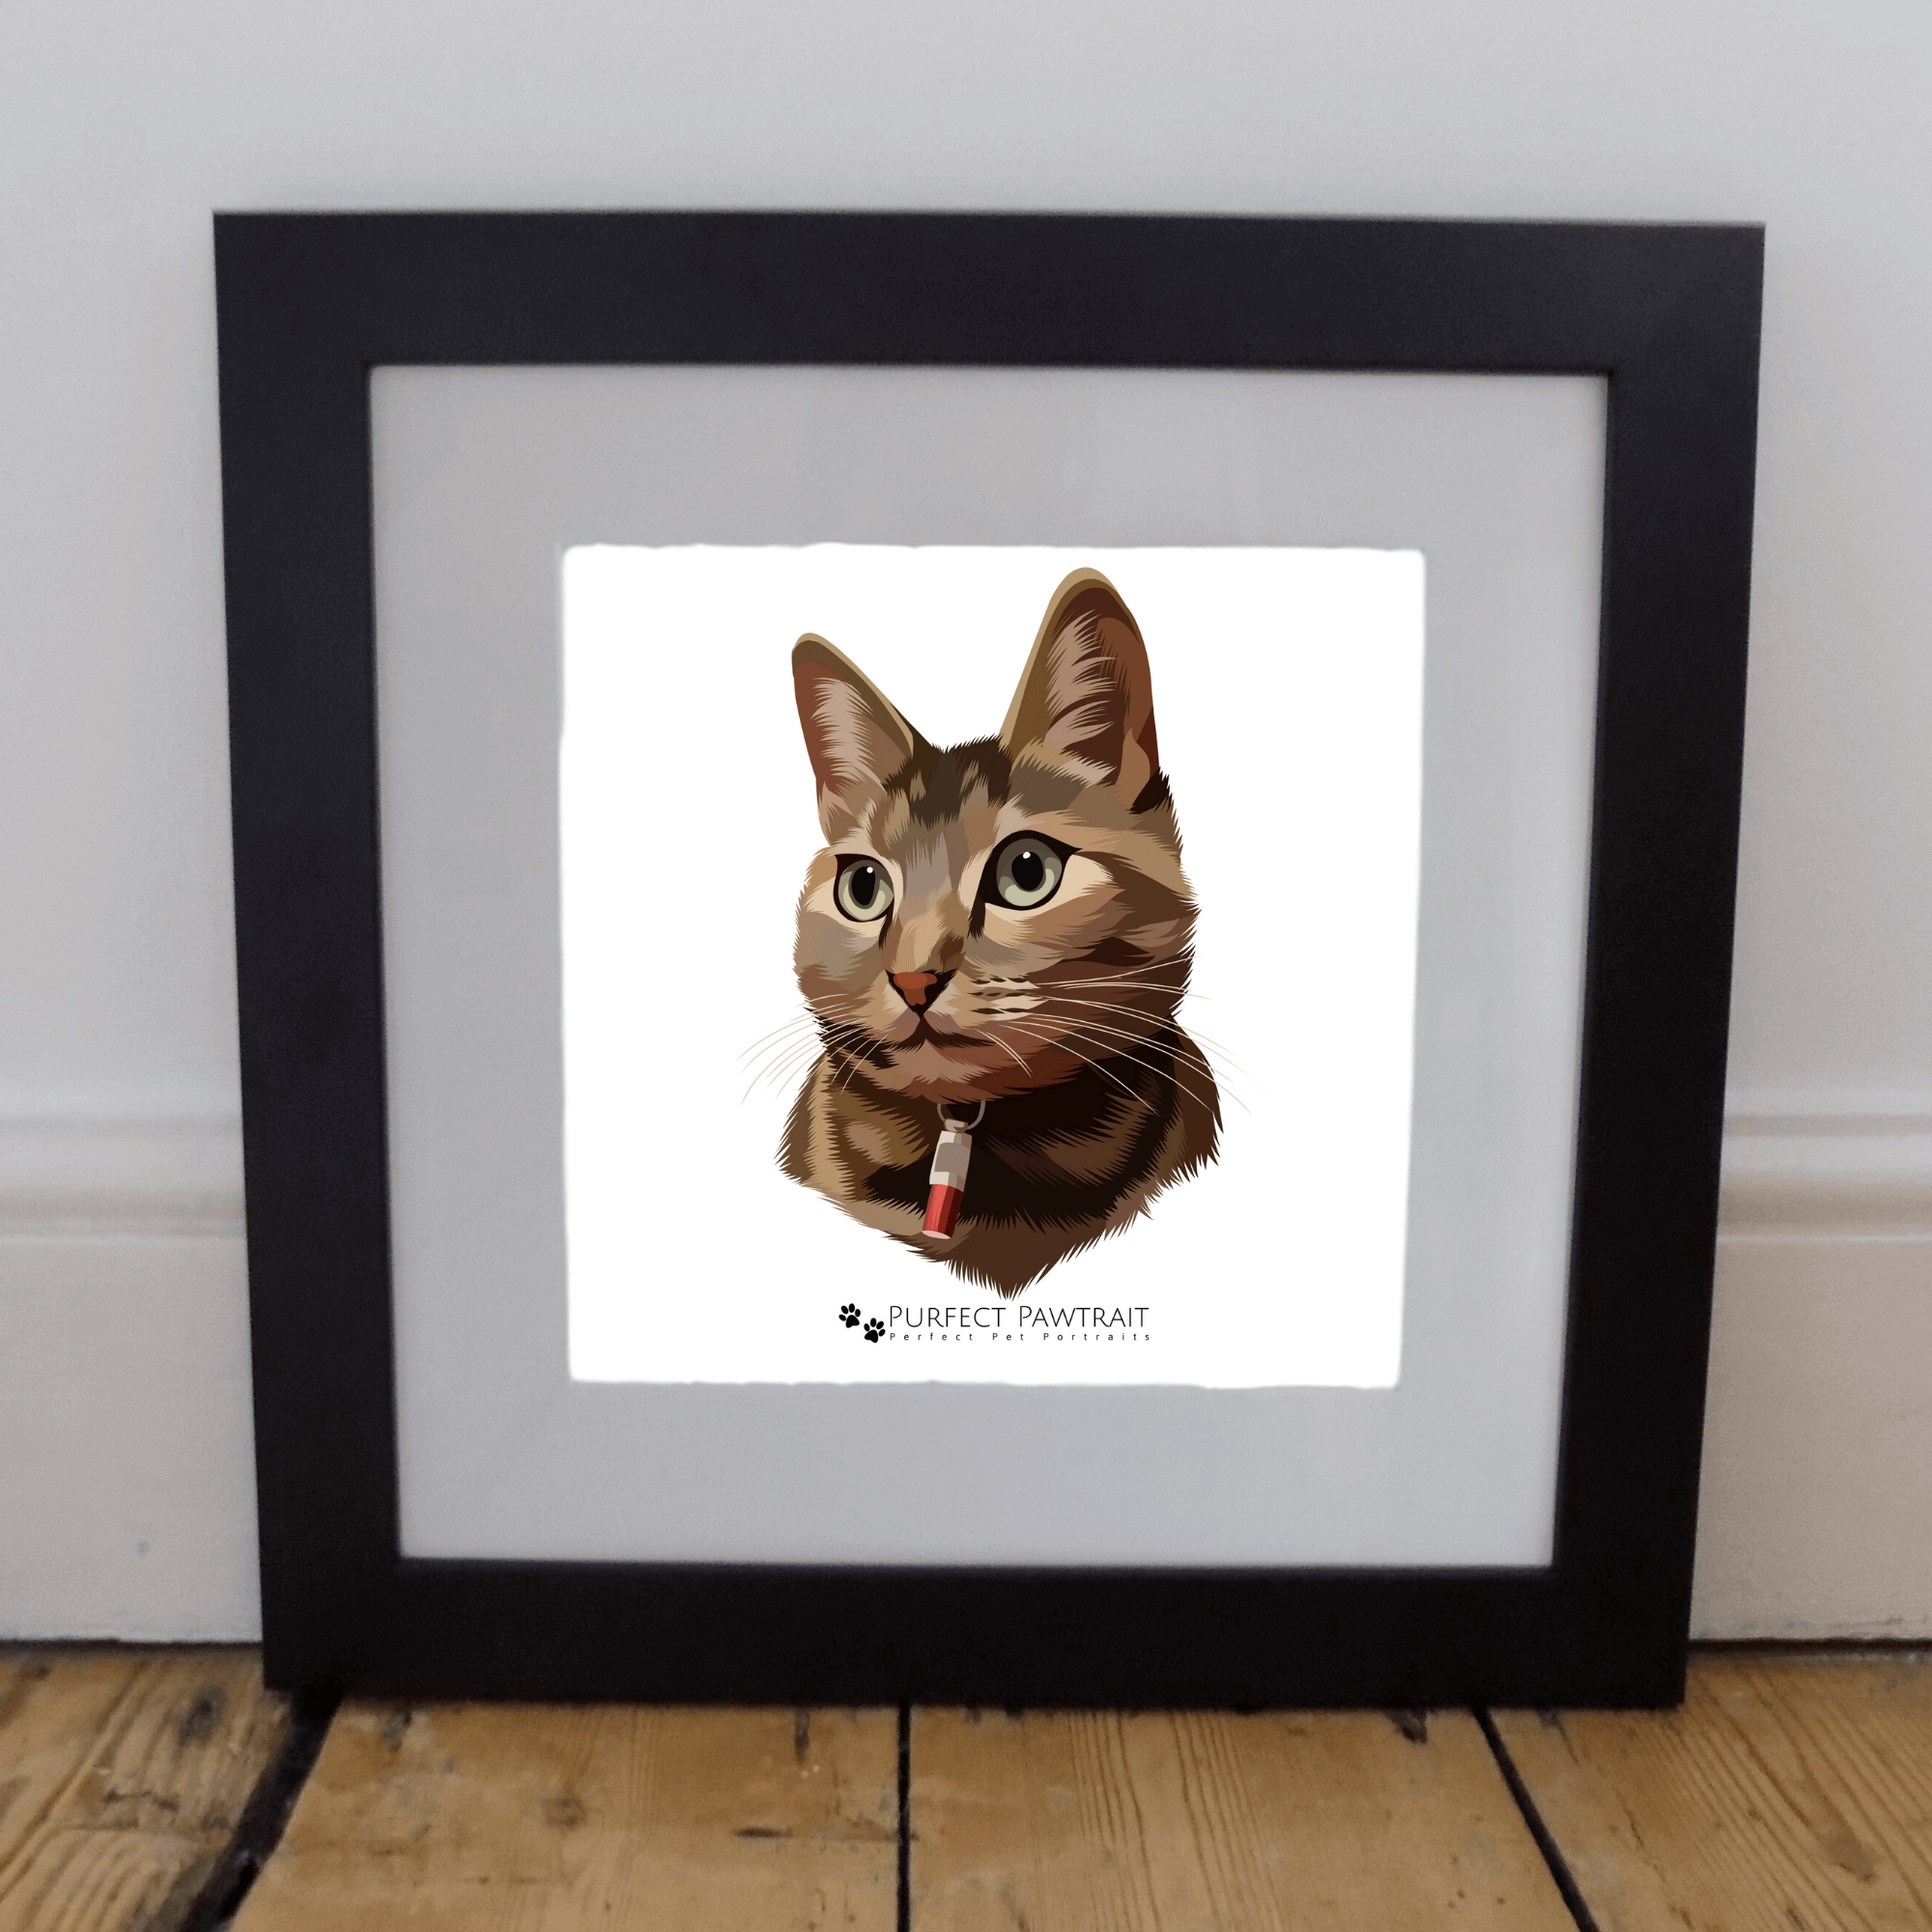 pufect pawtrait, pet portrait, pet portrait uk